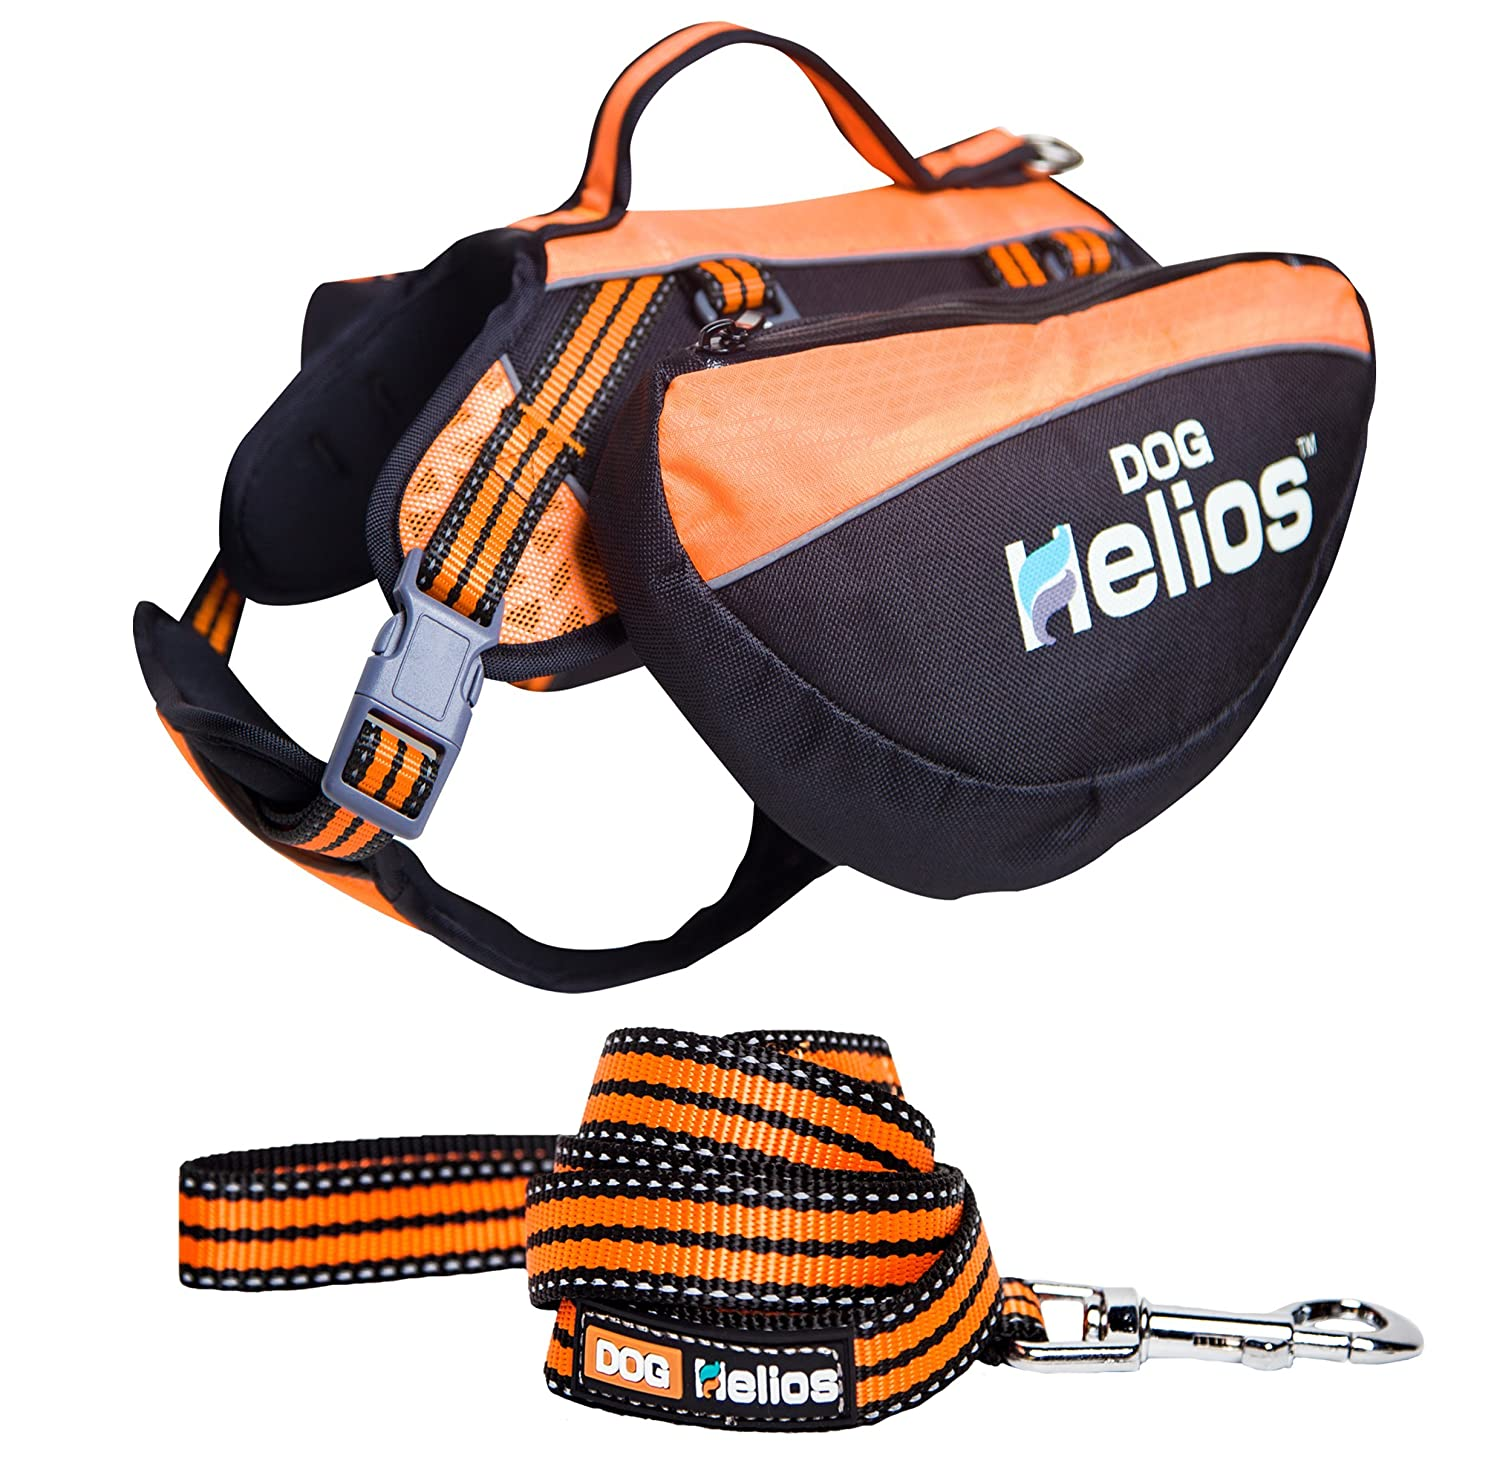 DogHelios Freestyle 3-in-1 Explorer Convertible Backpack Harness and Leash Small Orange Pet Life